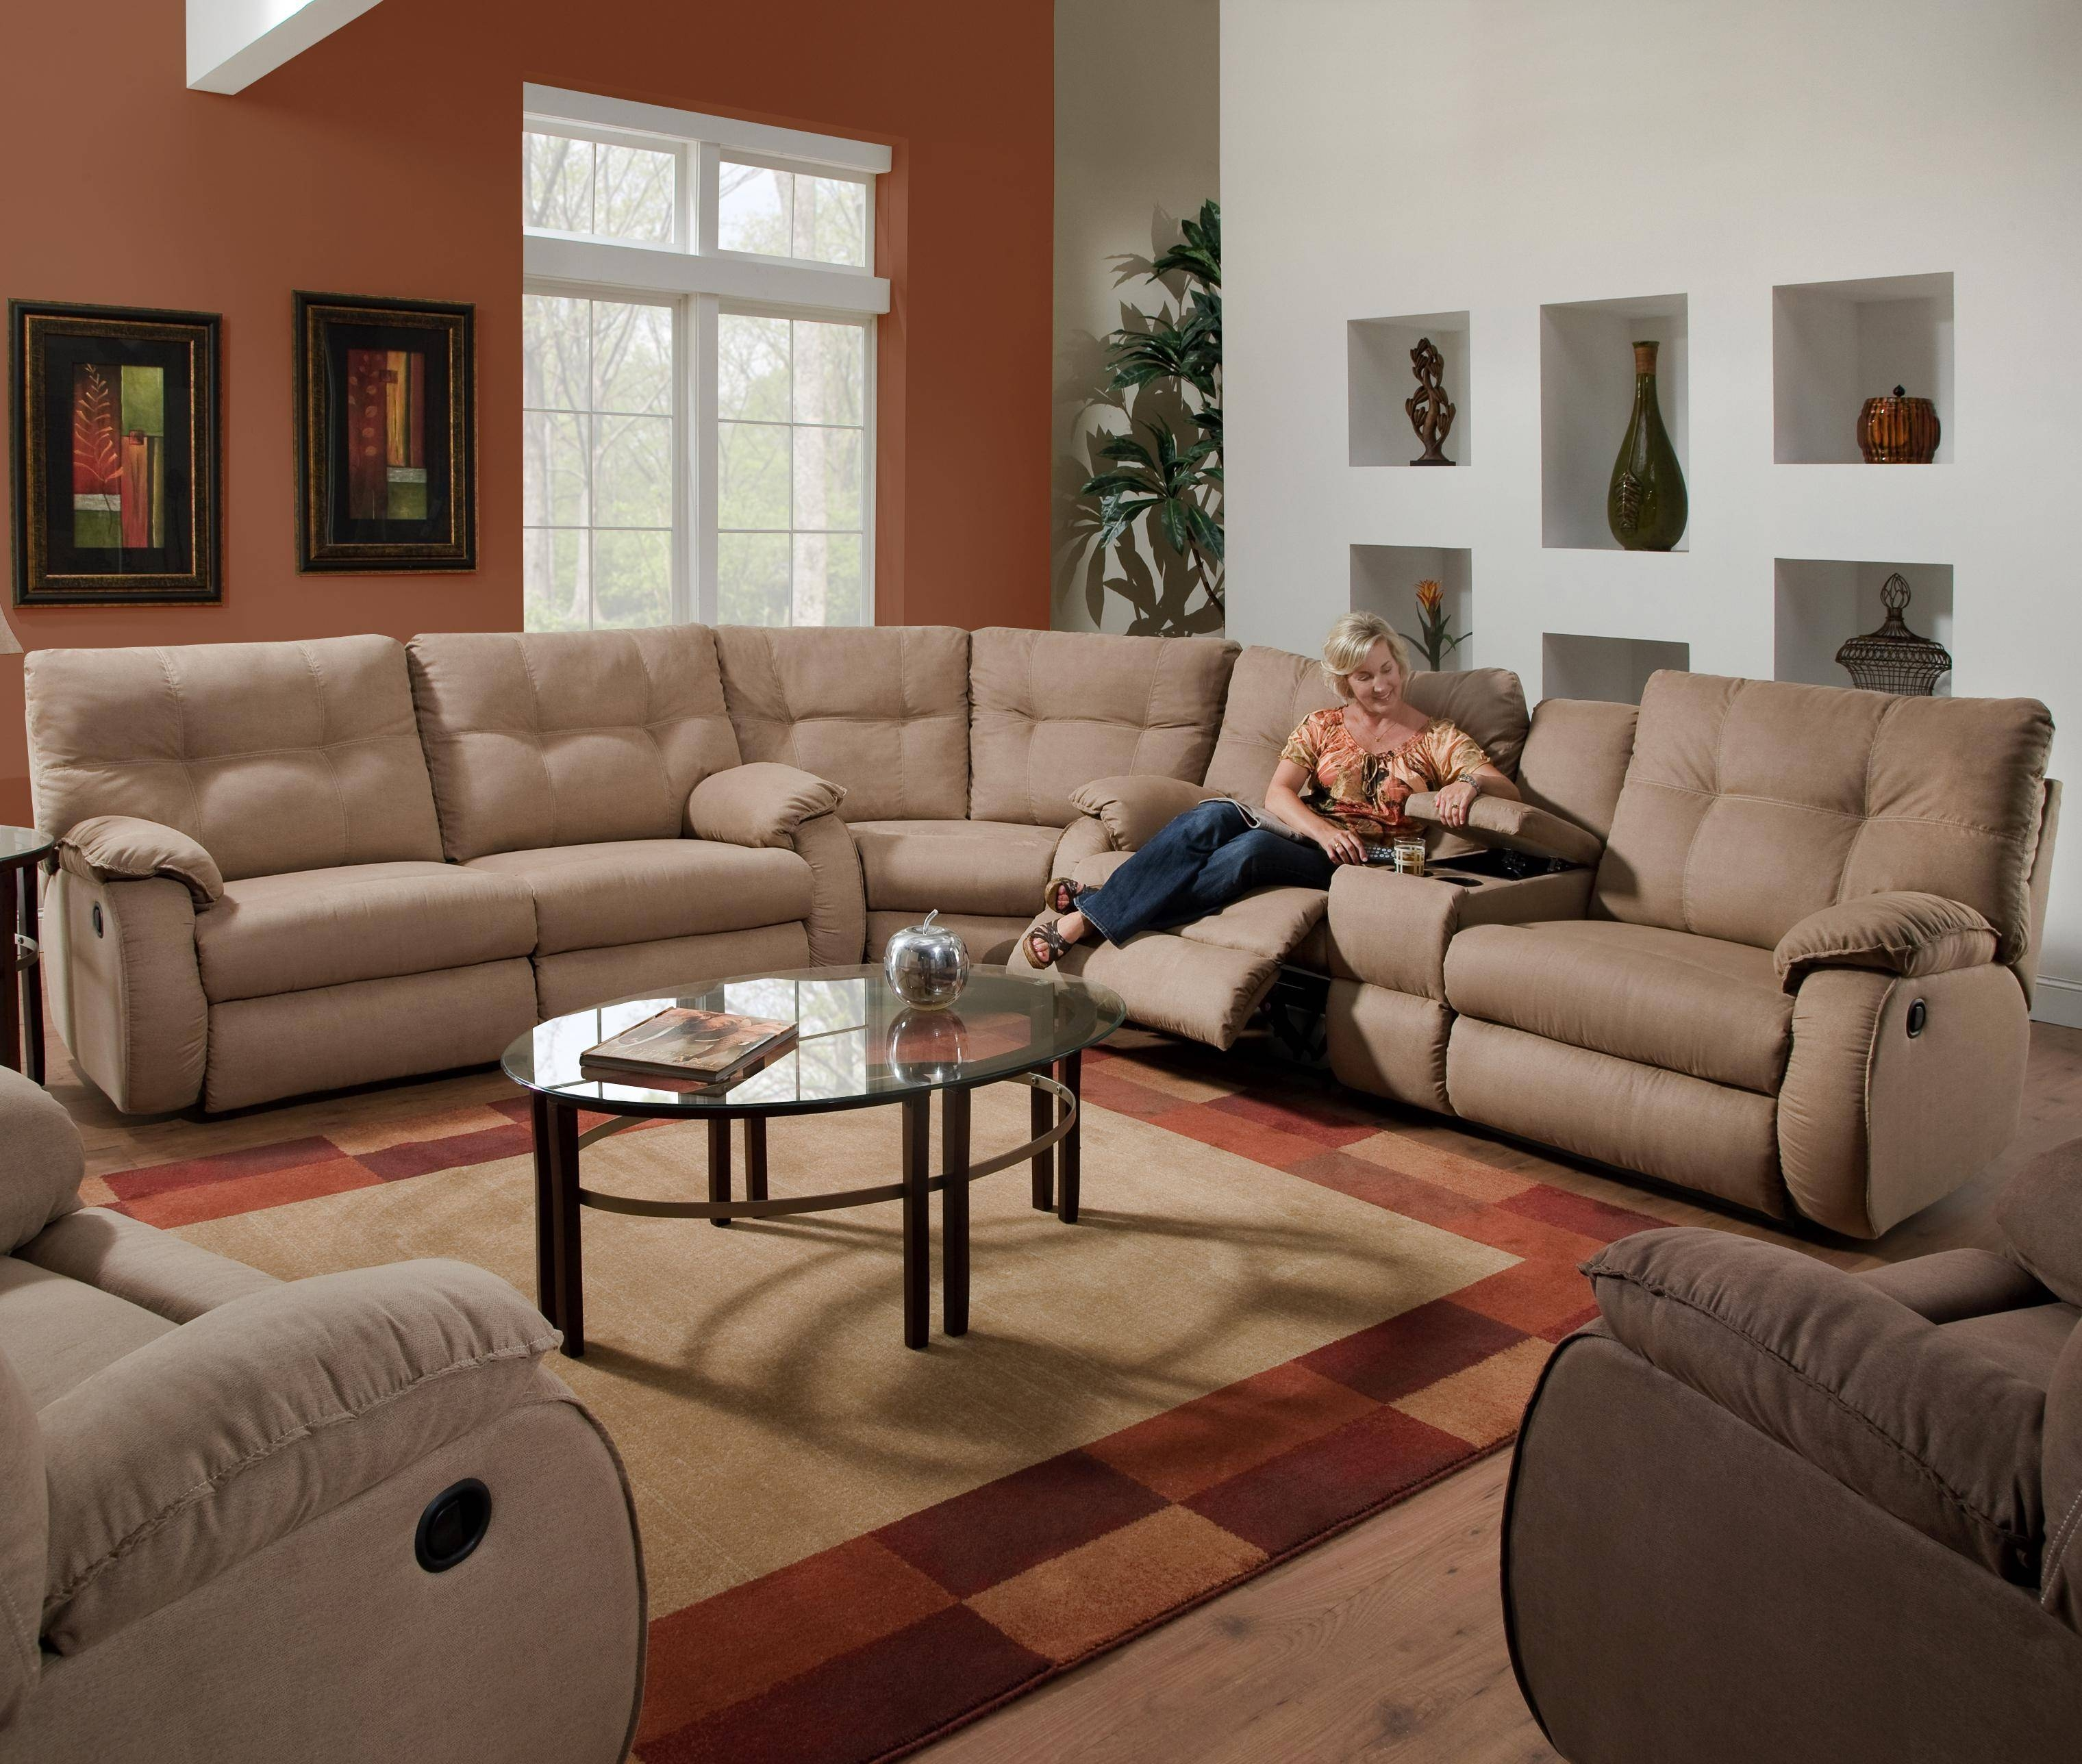 Furniture: Incredible Style Sectional Reclining Sofas For Your in Curved Sectional Sofa With Recliner (Image 12 of 30)